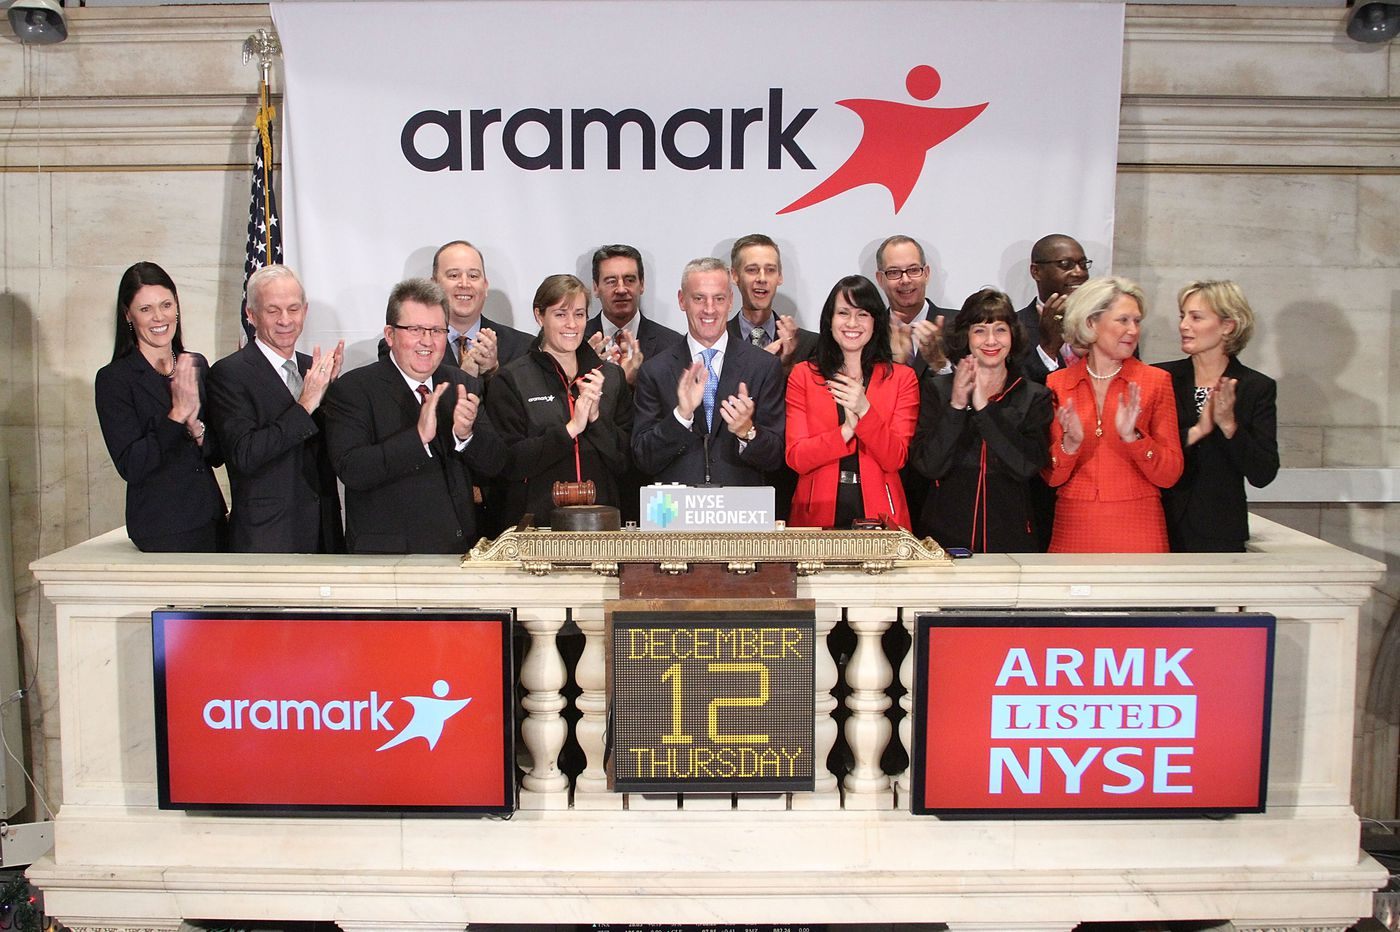 'Moving the goal post': Why thousands of Aramark managers didn't get their 2018 bonuses